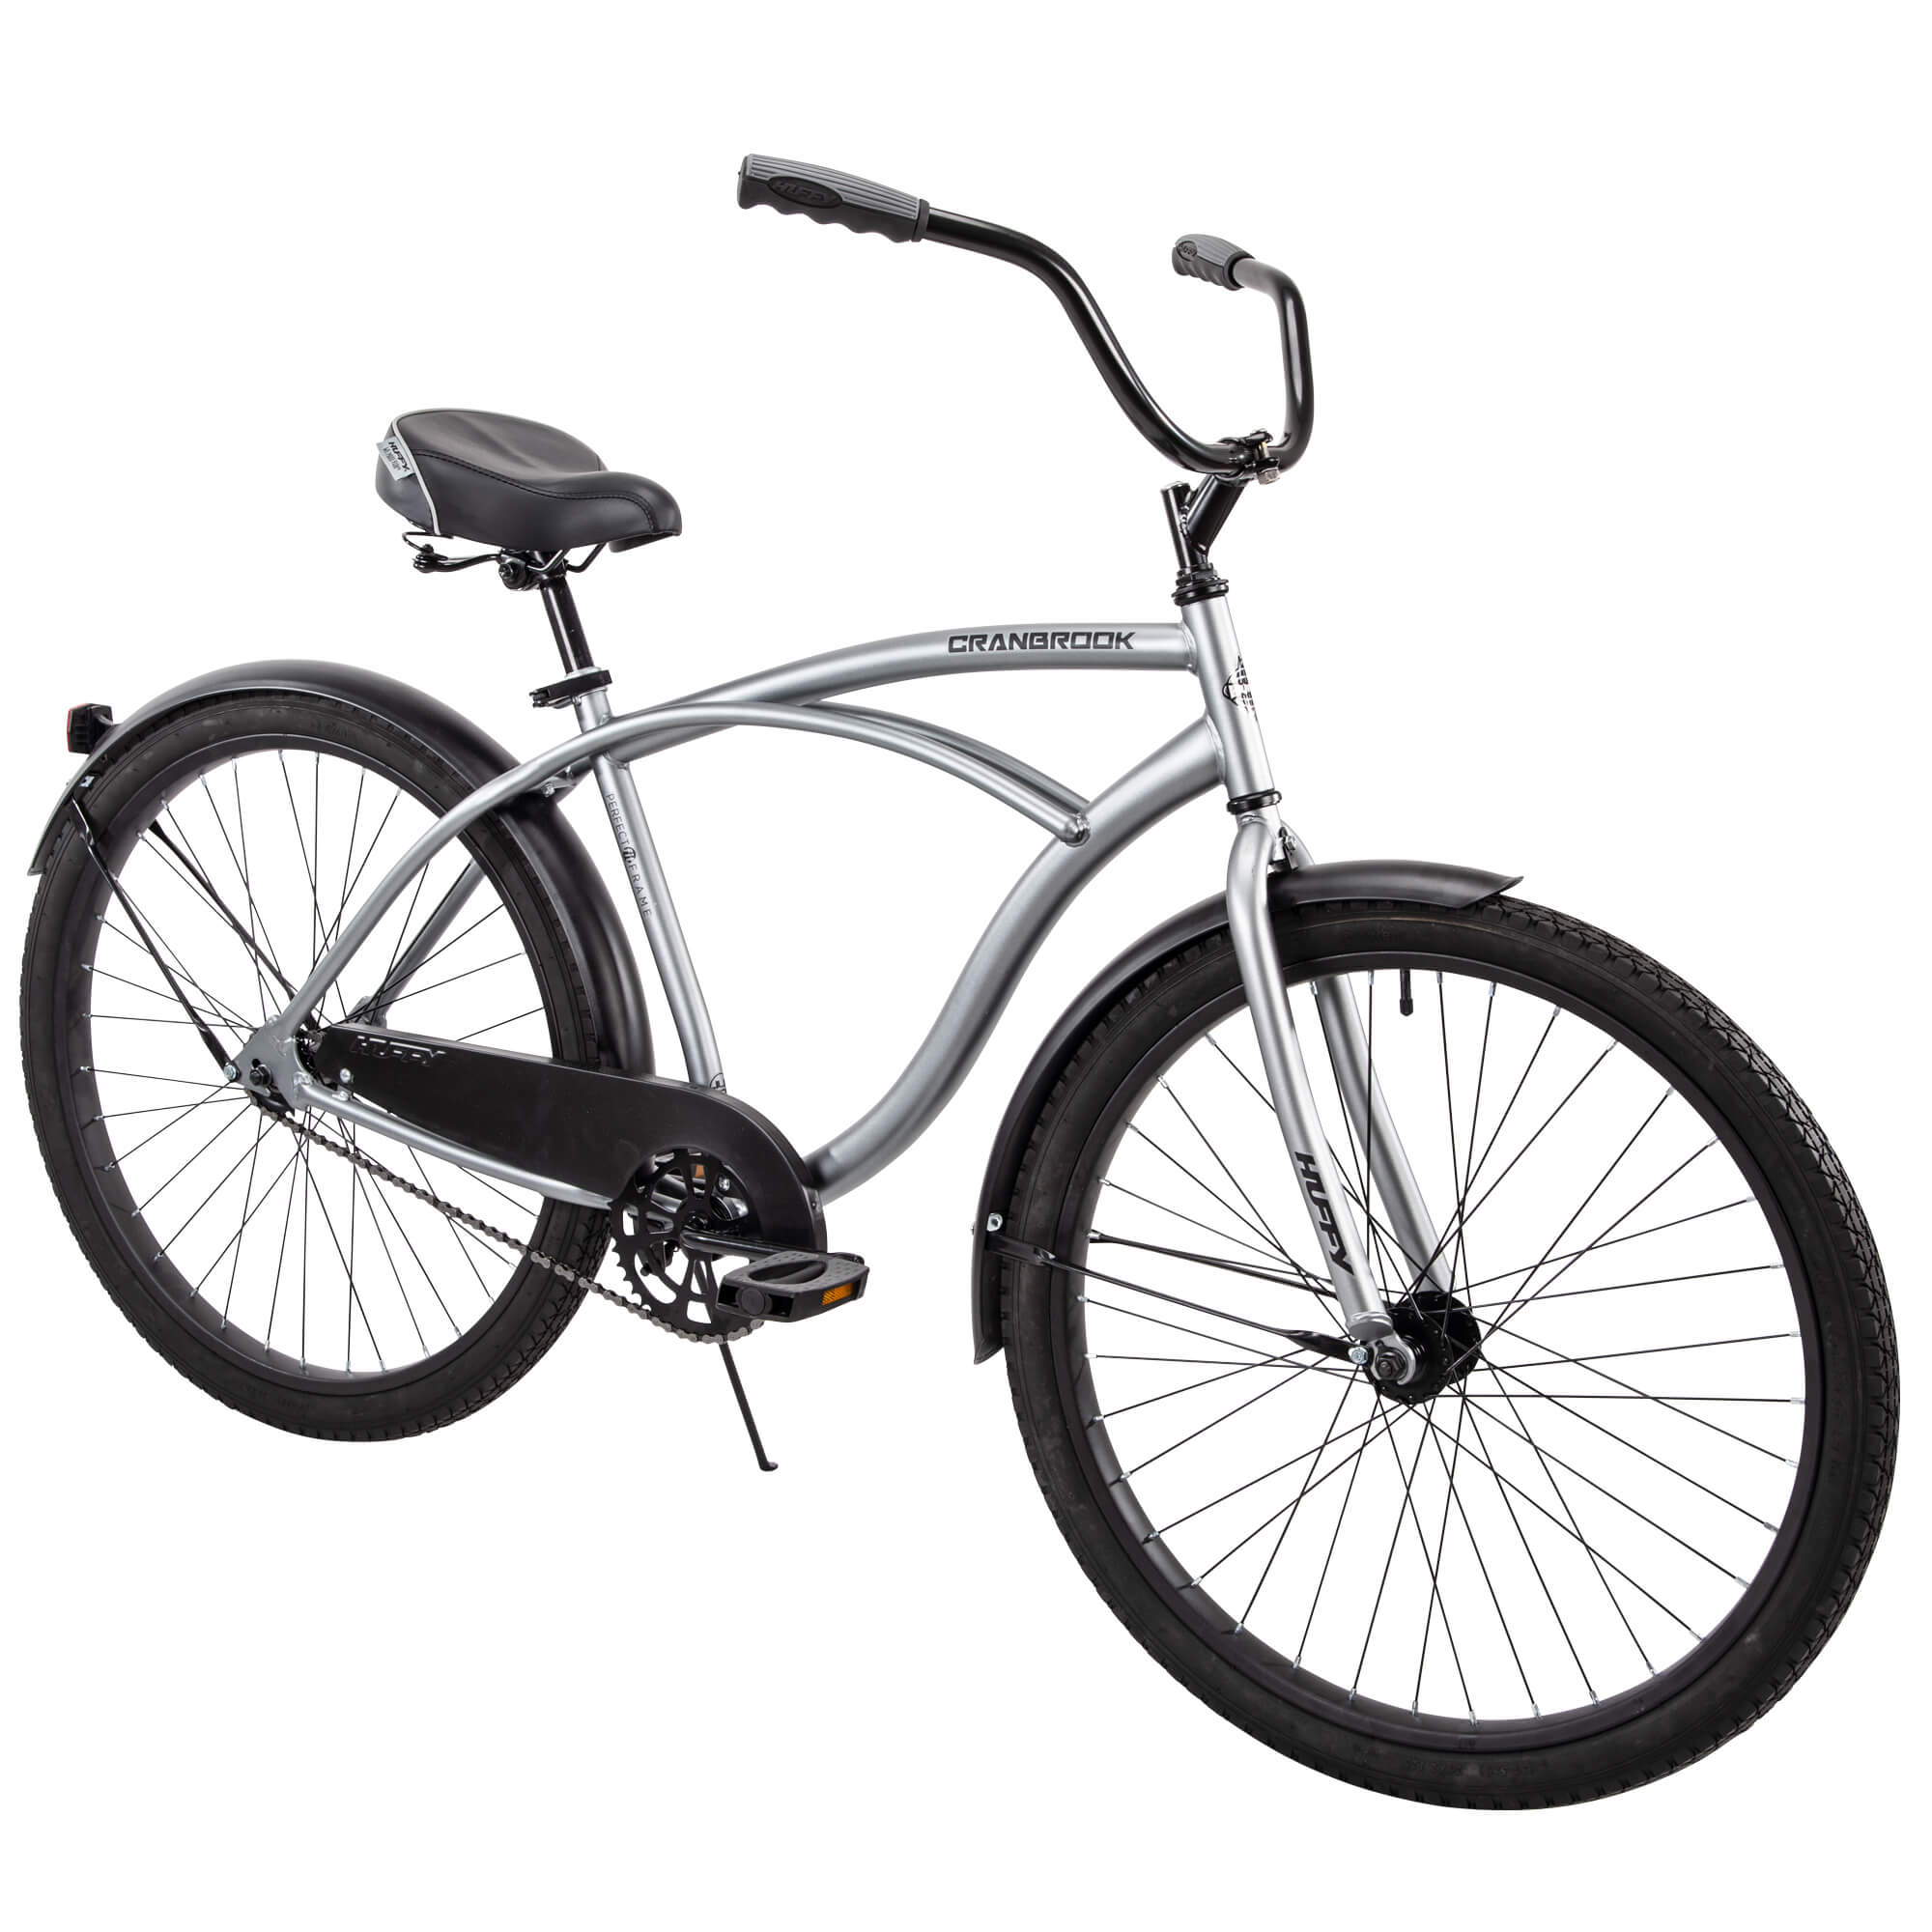 "Huffy 26"" Cranbrook Men's Beach Cruiser Comfort Bike"